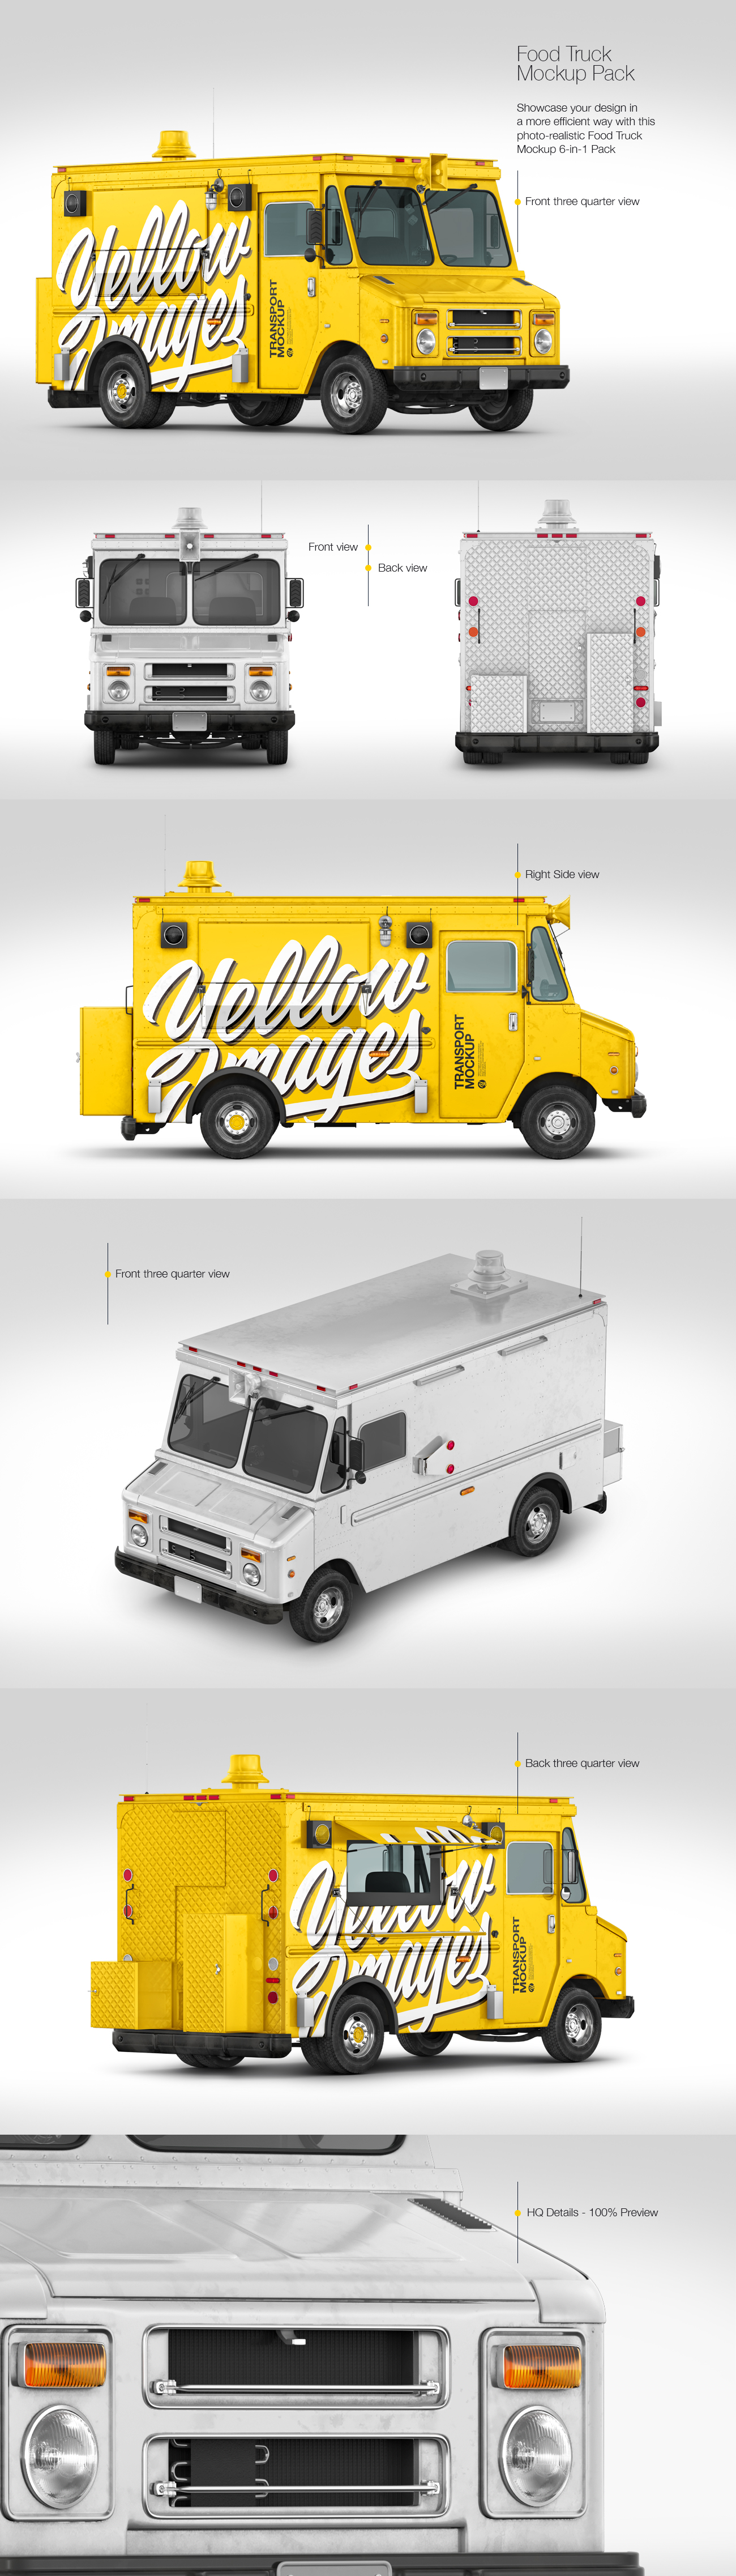 Download Foodtruck Mockup Pack In Handpicked Sets Of Vehicles On Yellow Images Creative Store Yellowimages Mockups